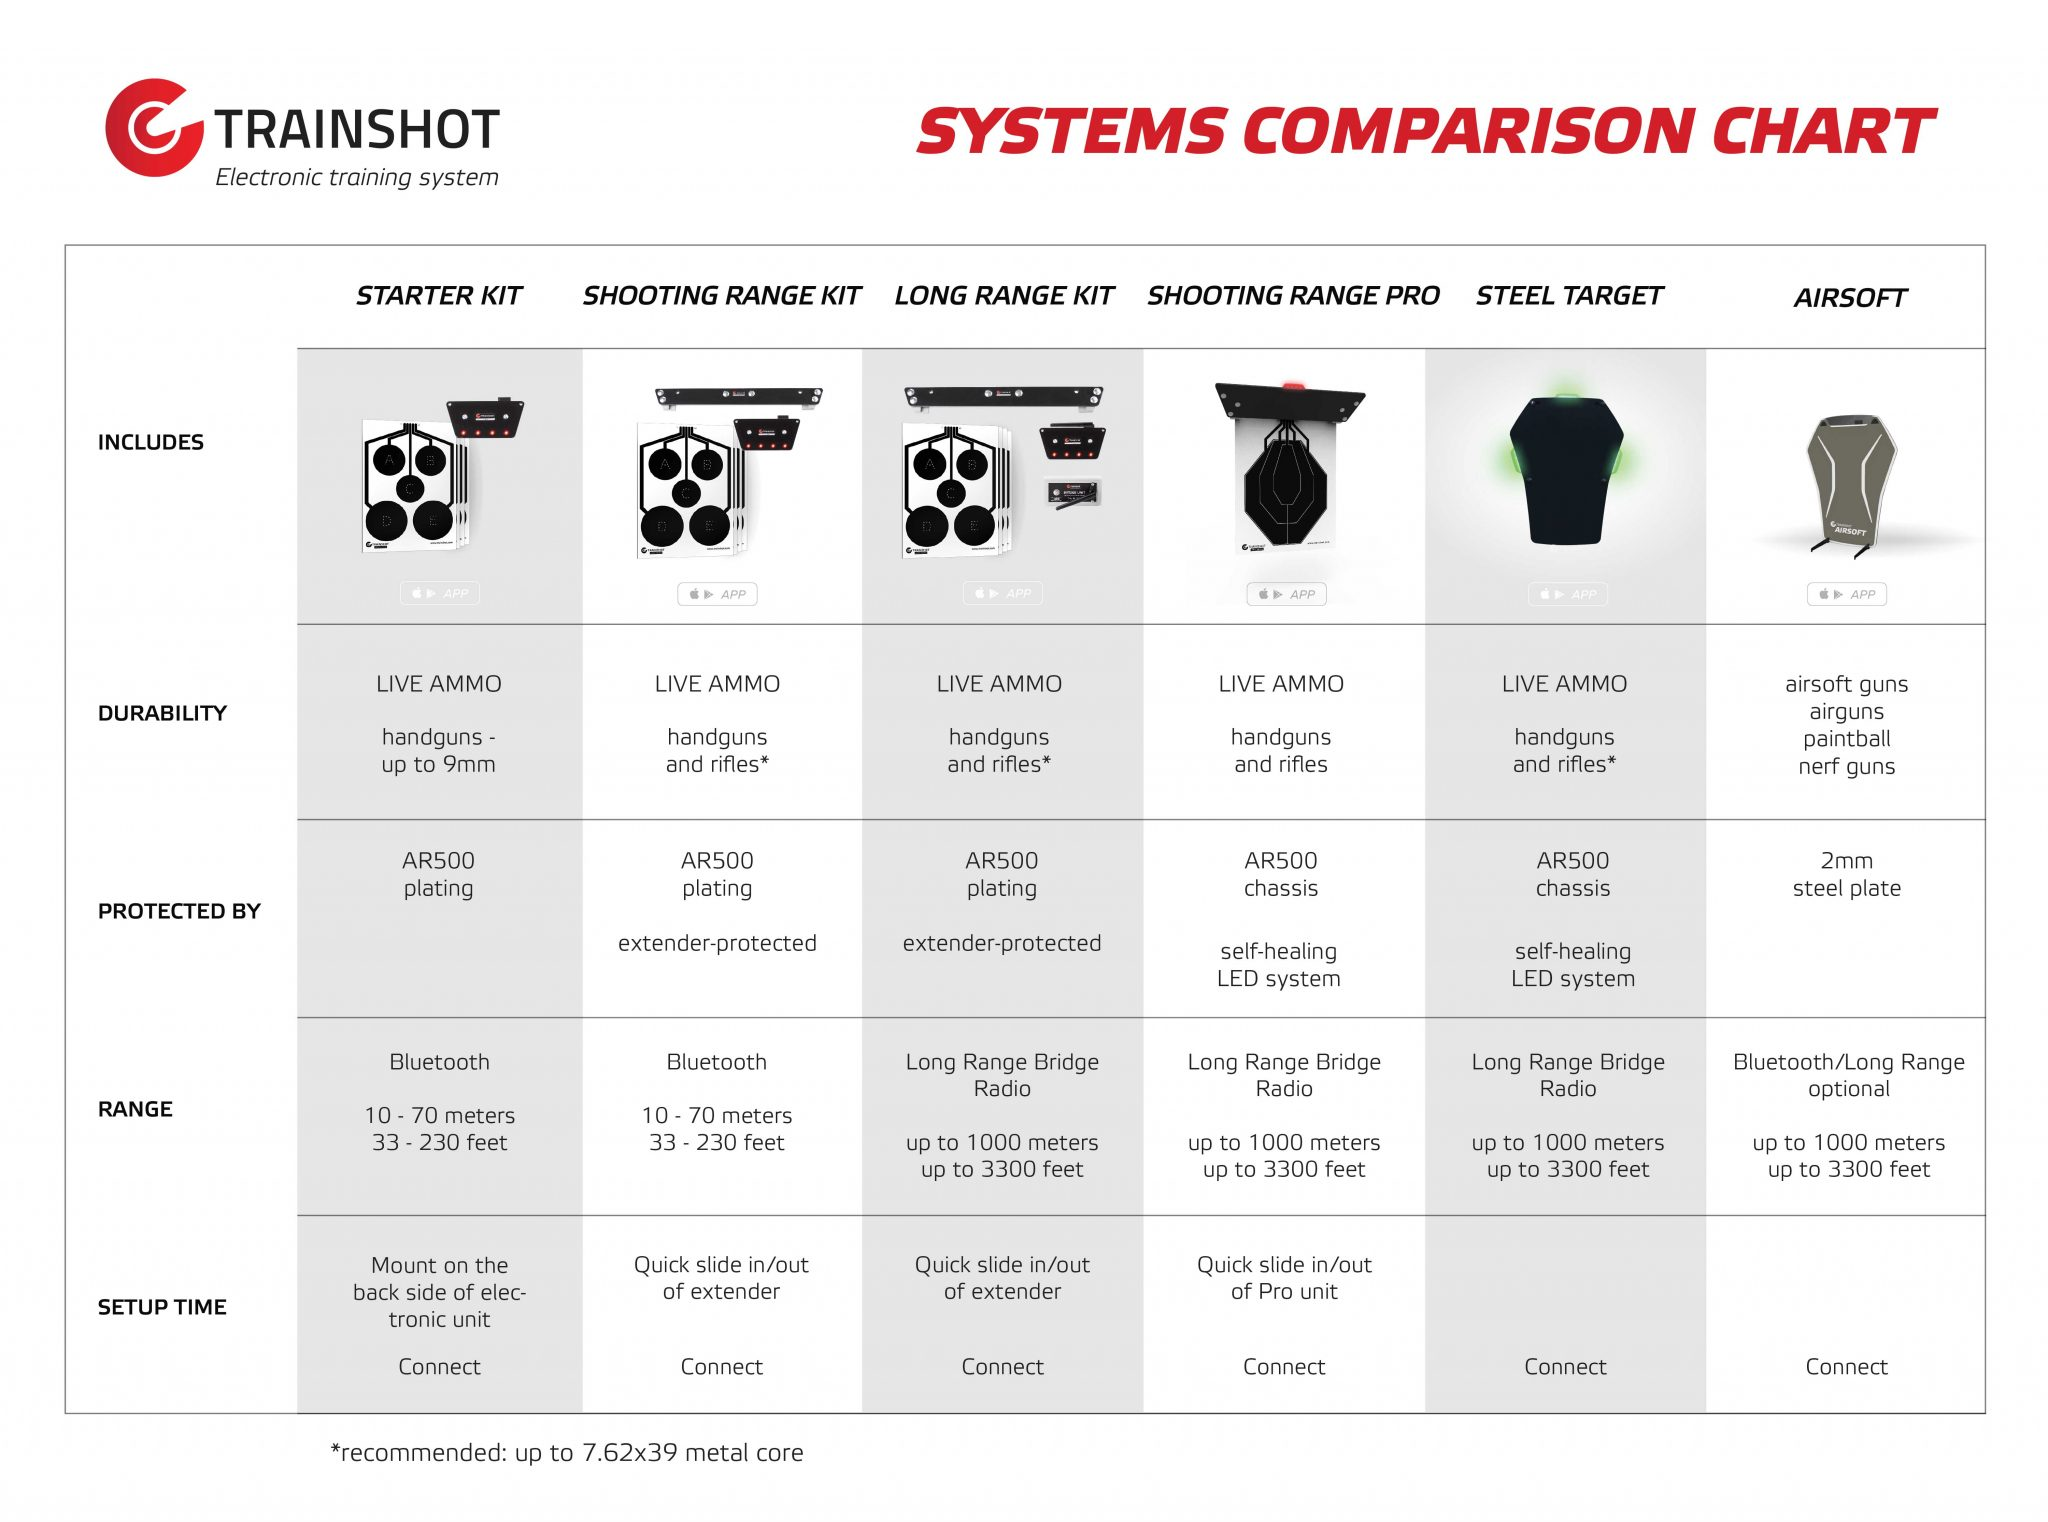 trainshot shooting systems comparison chart